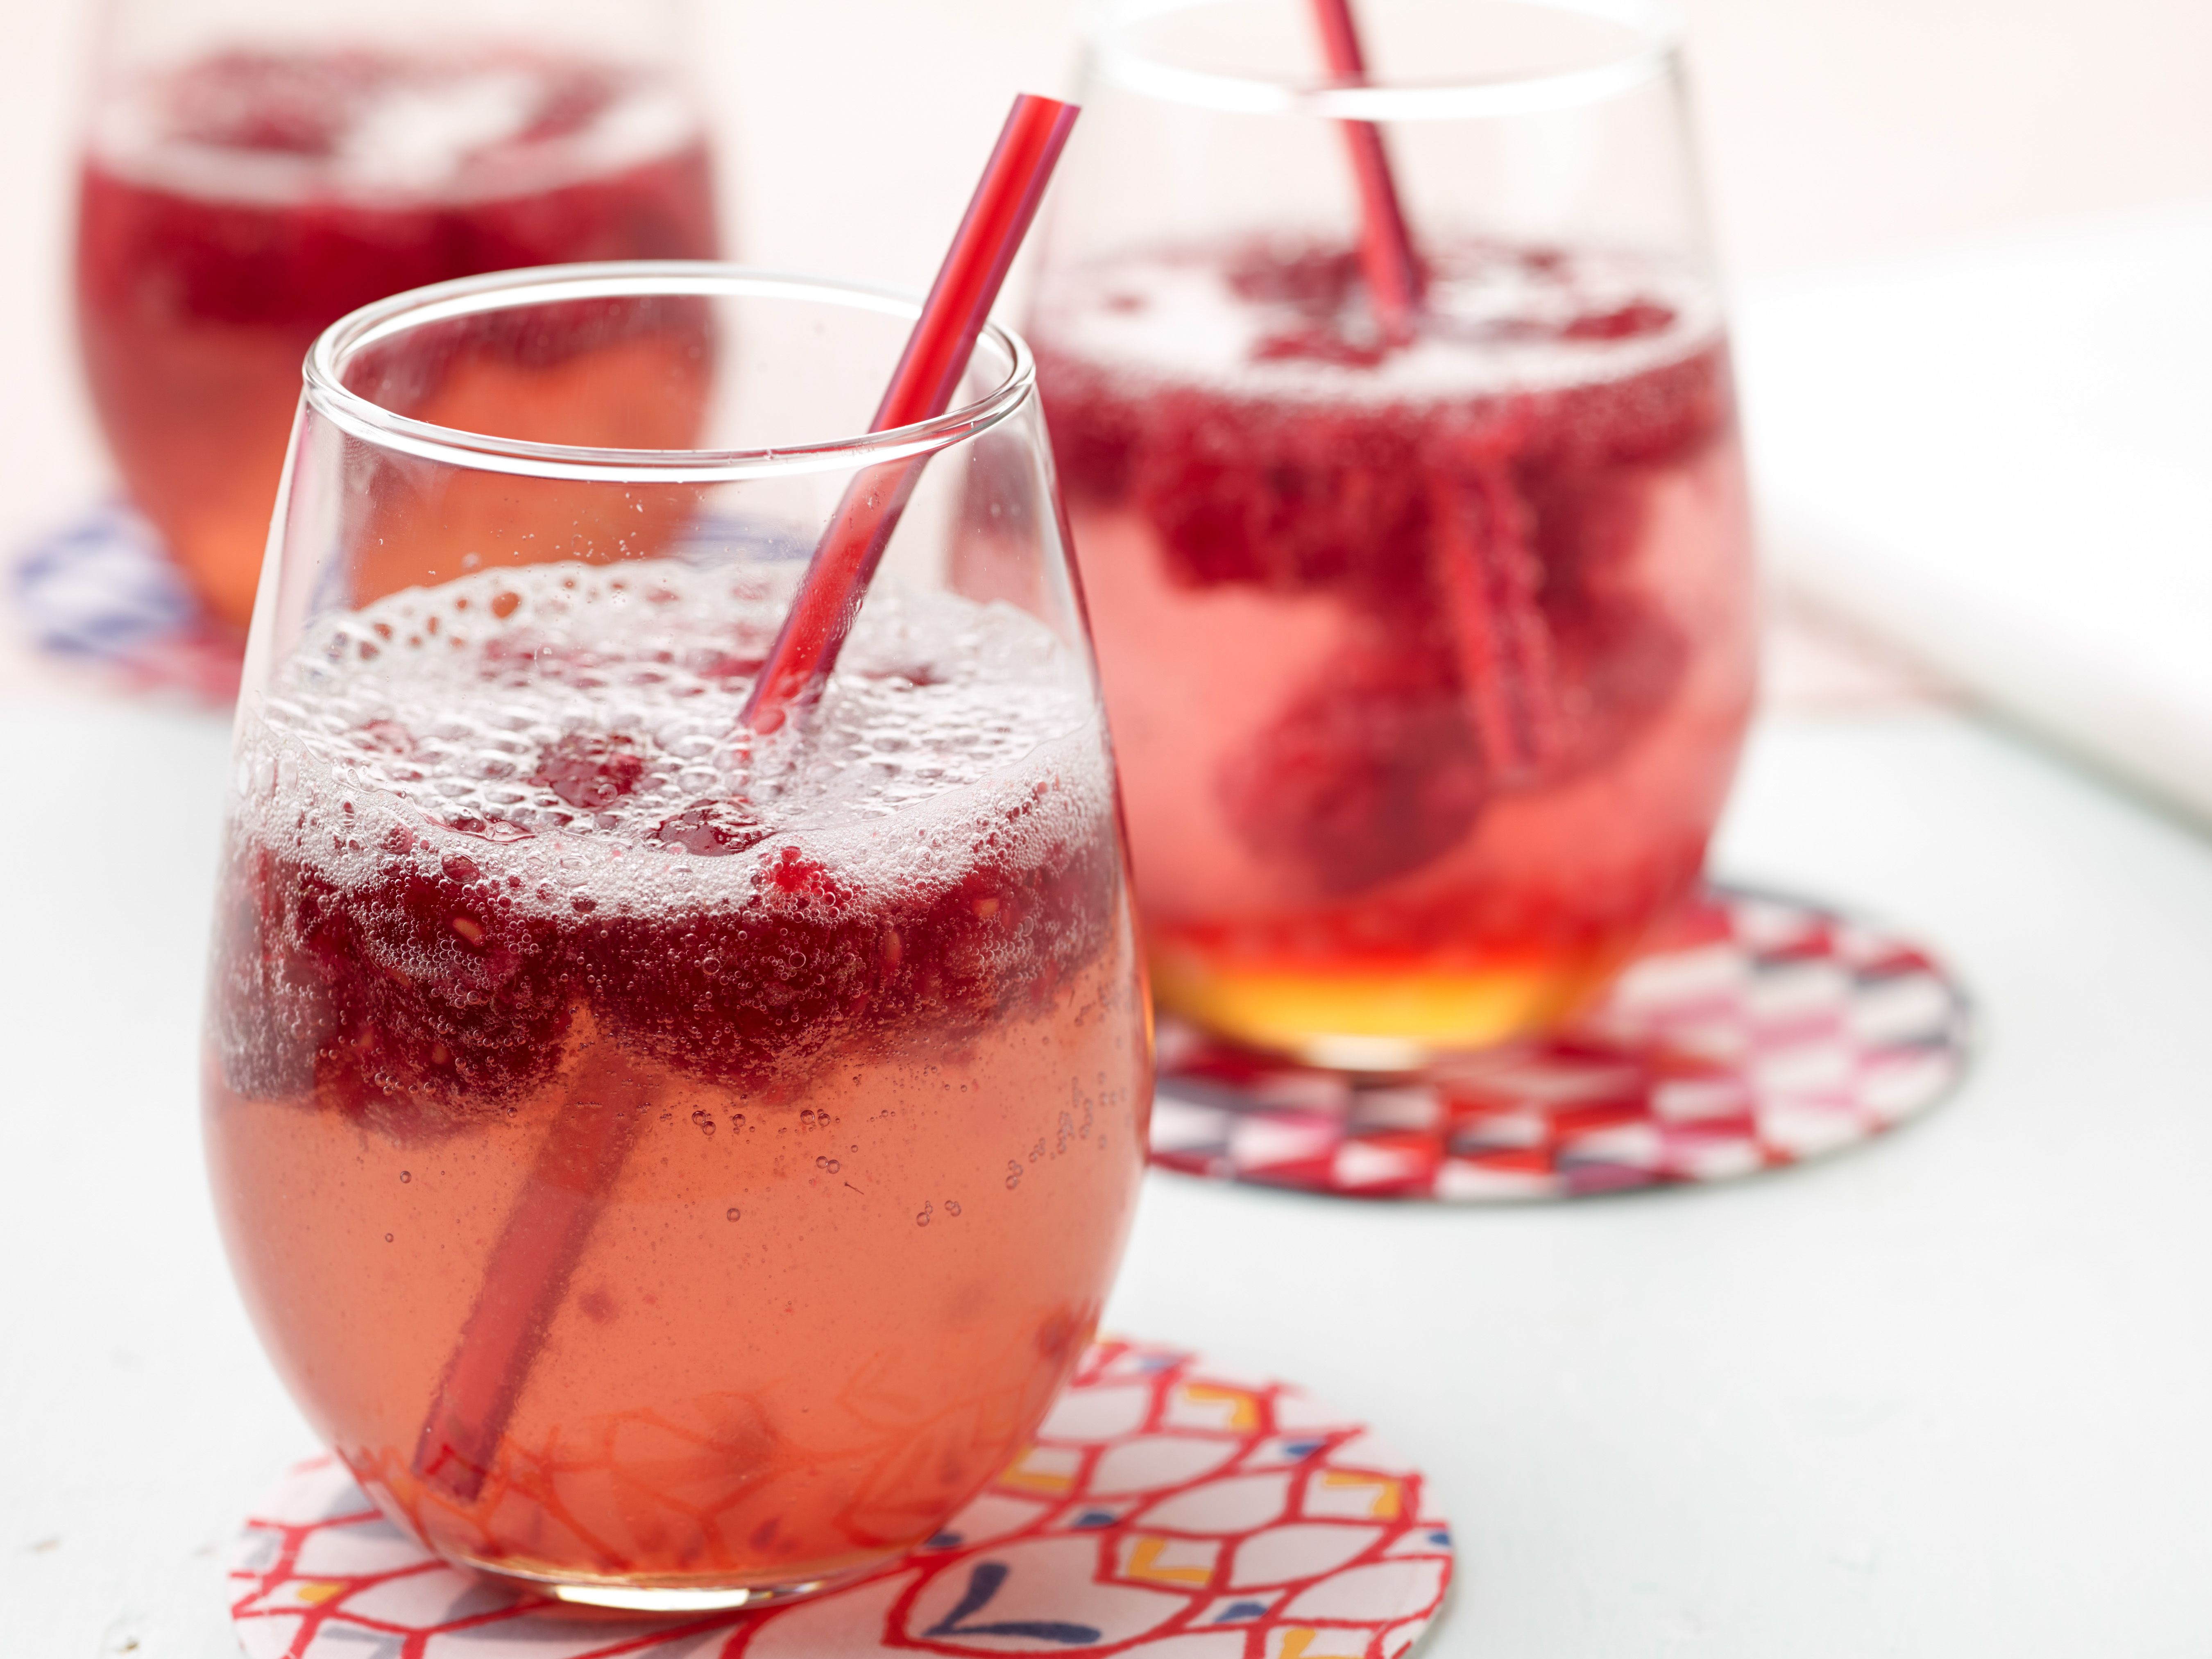 Raspberry gingerale recipe bobby raspberry and food raspberry gingerale raspberry recipesbobby flay recipeschef bobby flayraspberriesrecipe boxfood network forumfinder Images